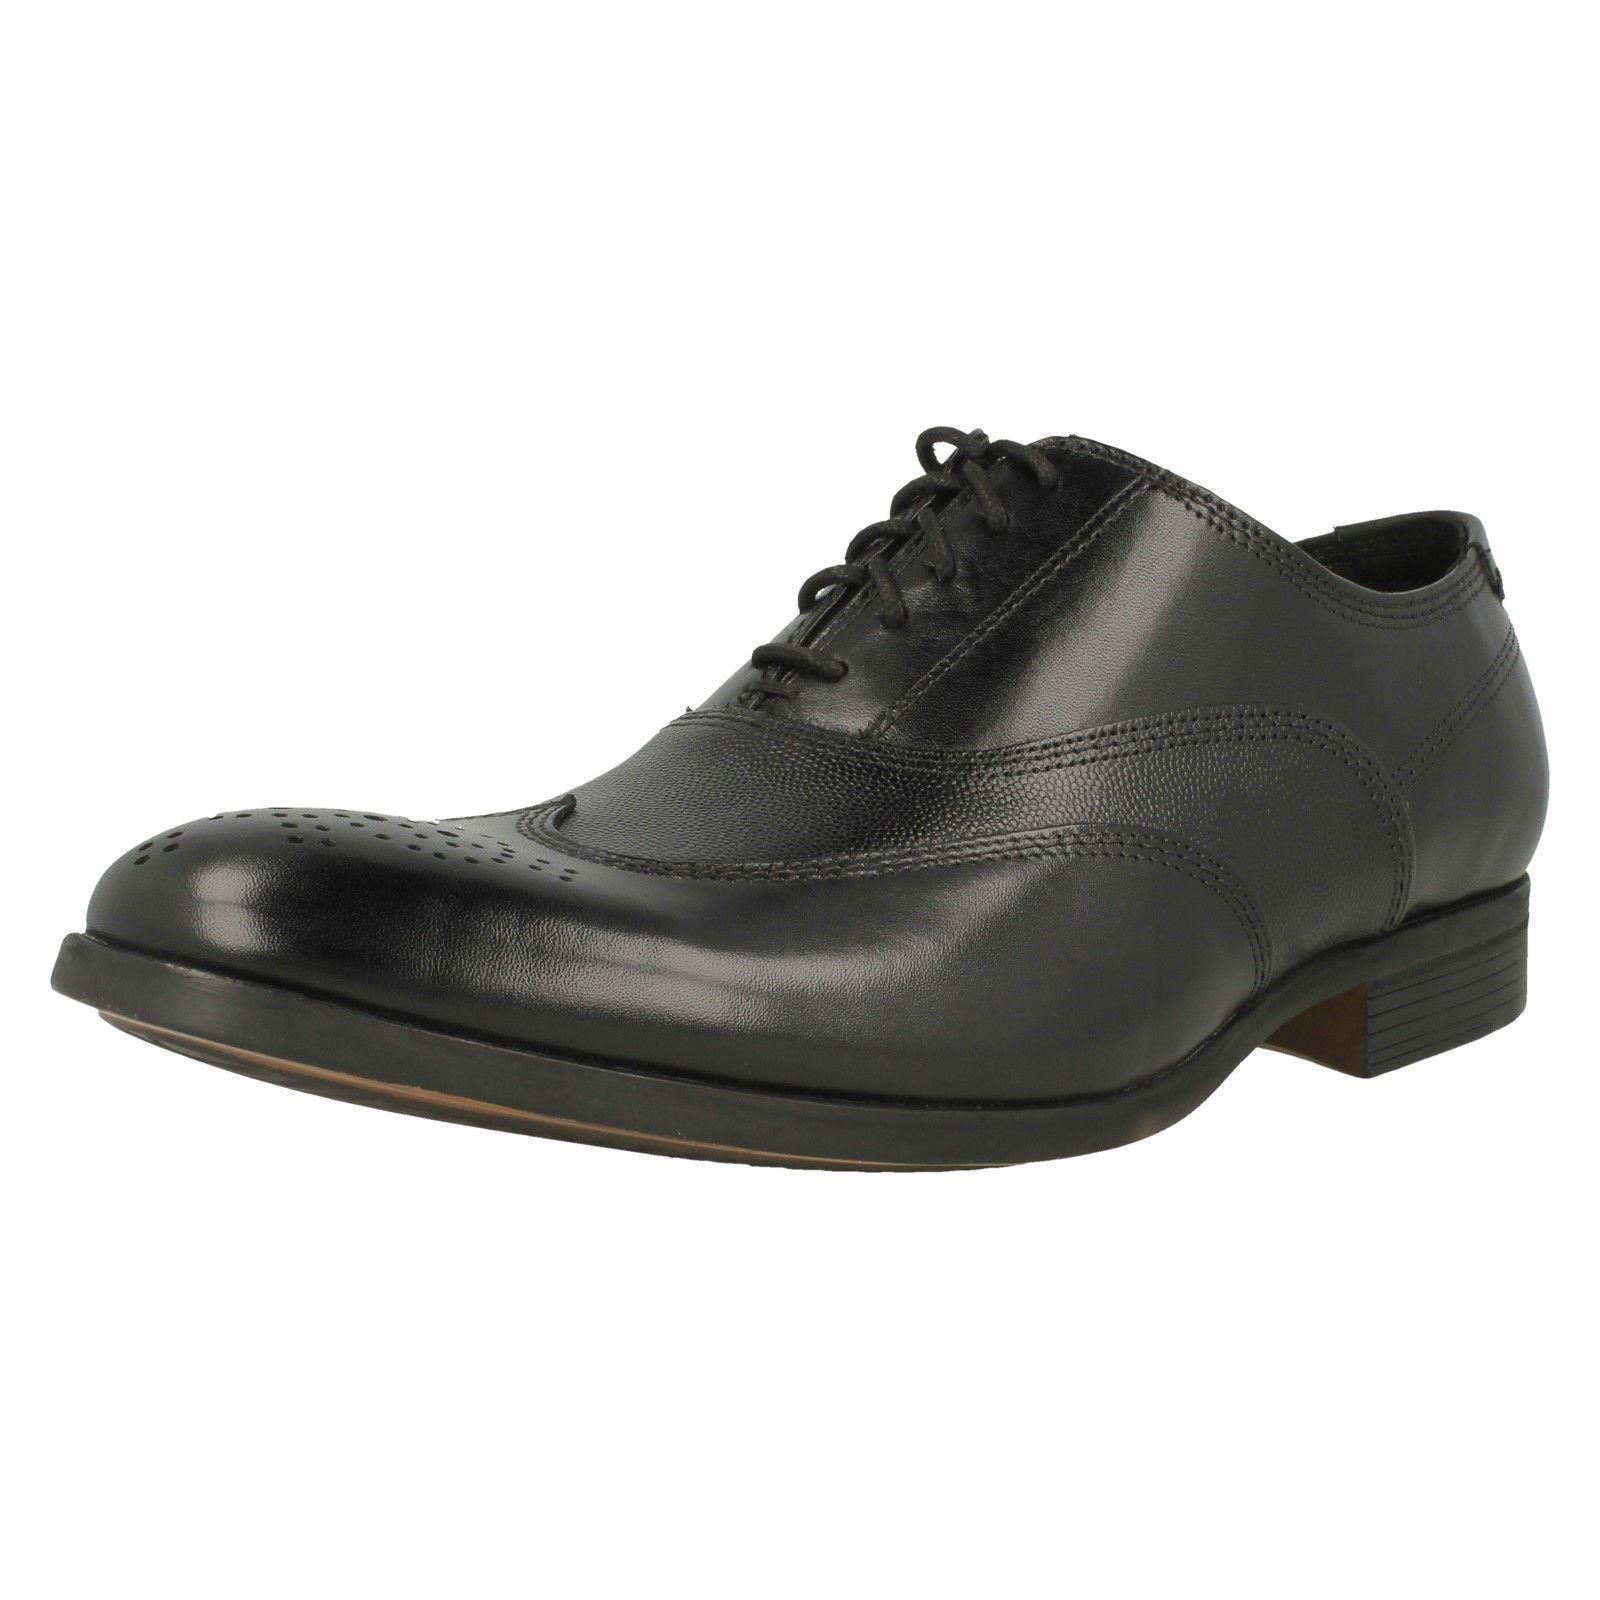 Mens Clarks Gilmore Wing Formal Leather Lace Up Shoes